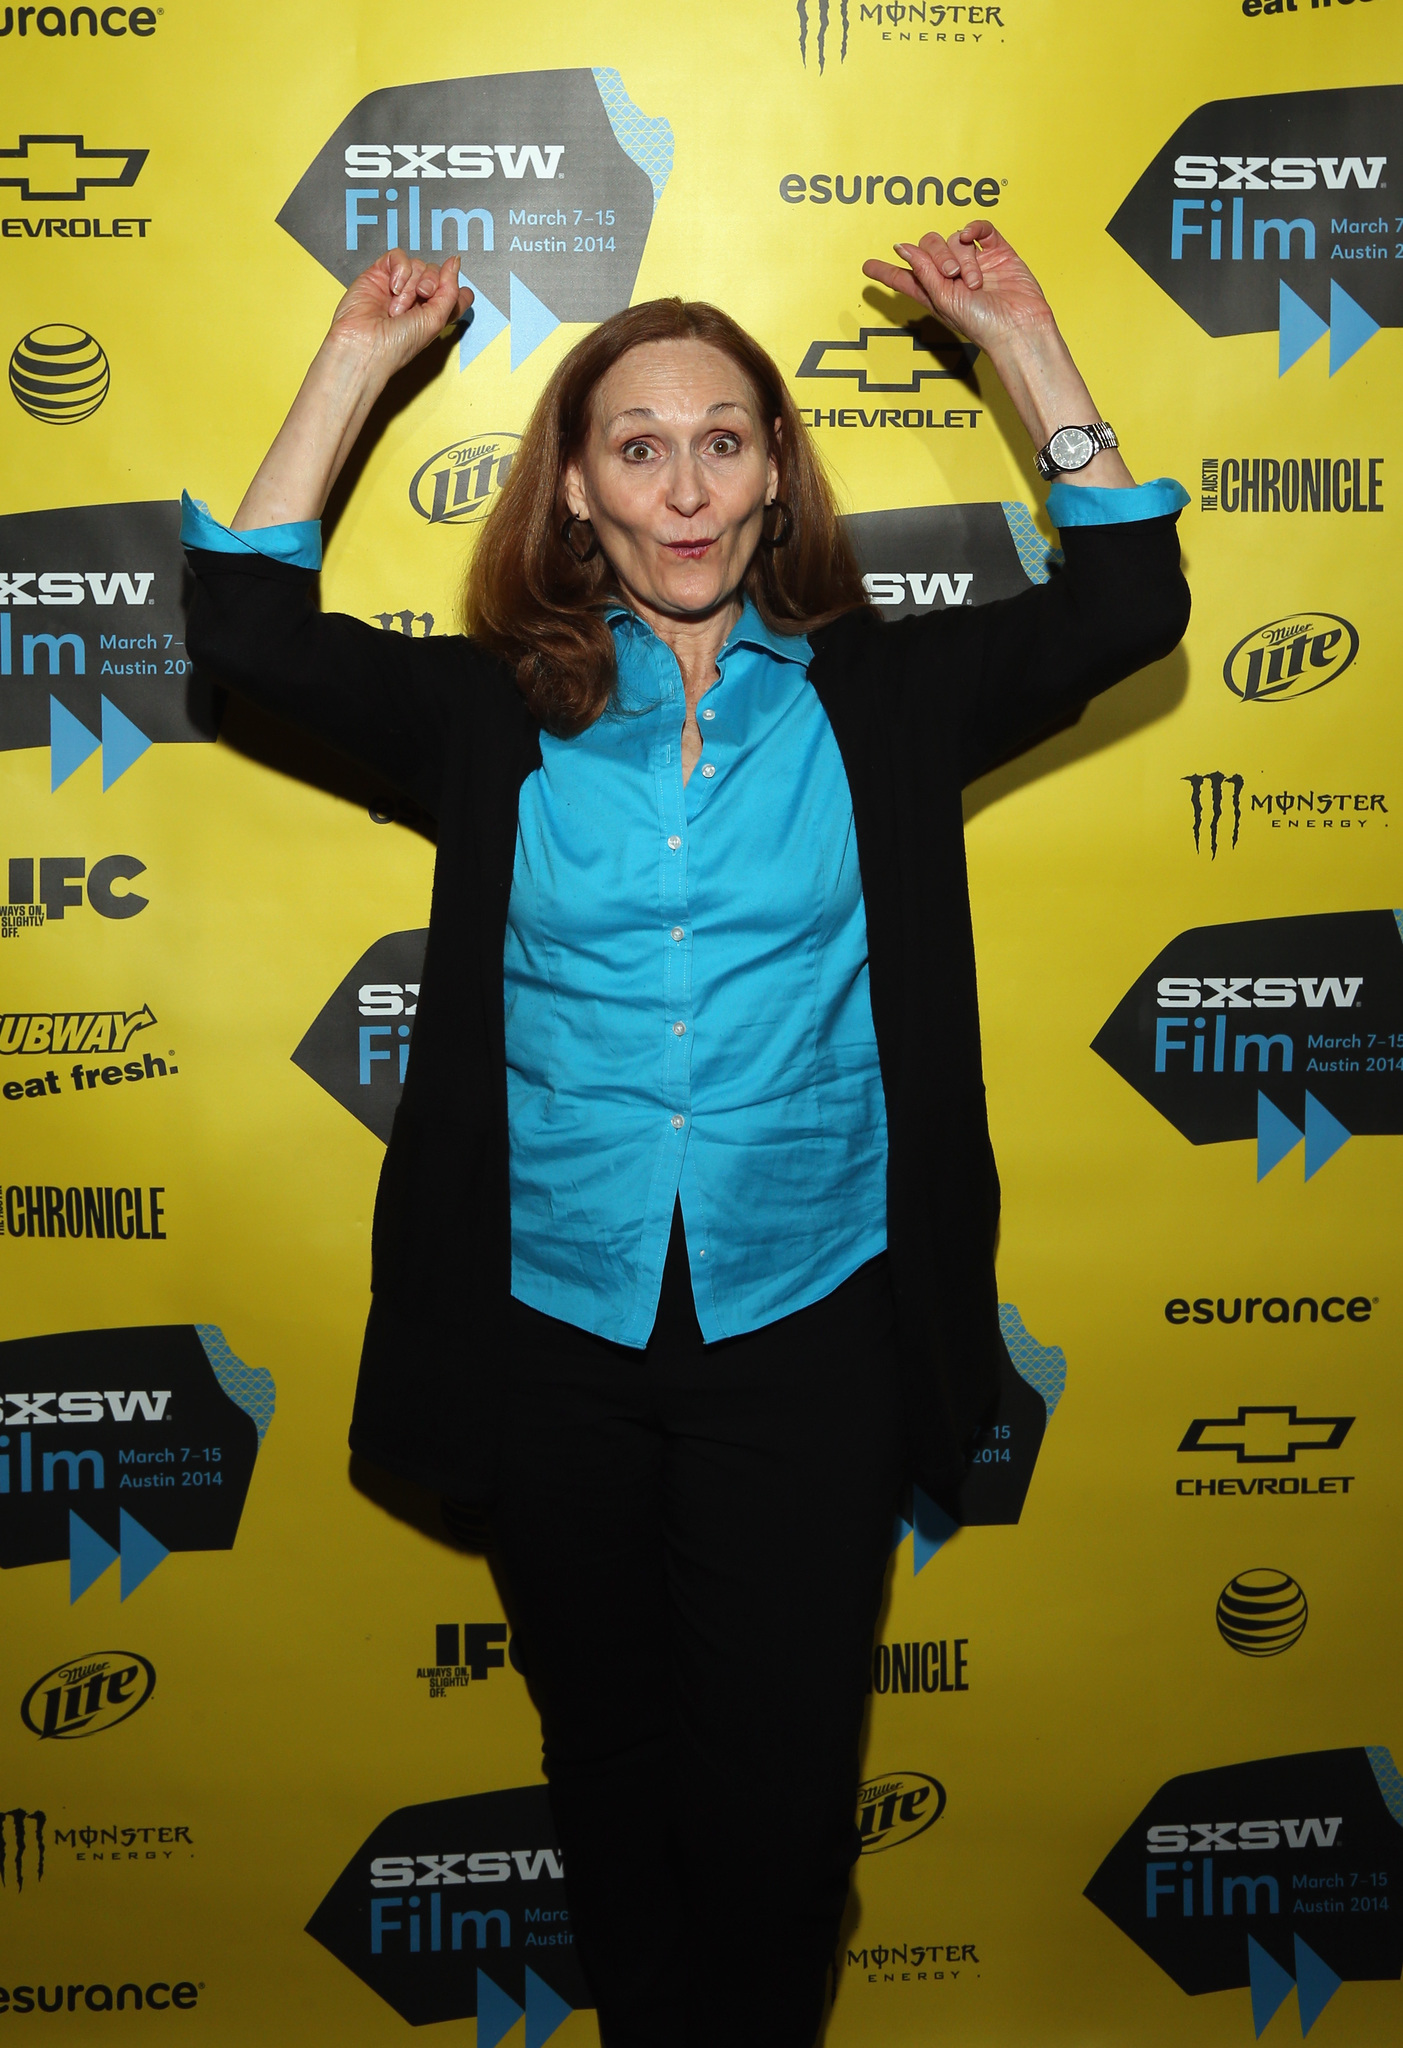 Beth Grant at an event for Faults (2014)